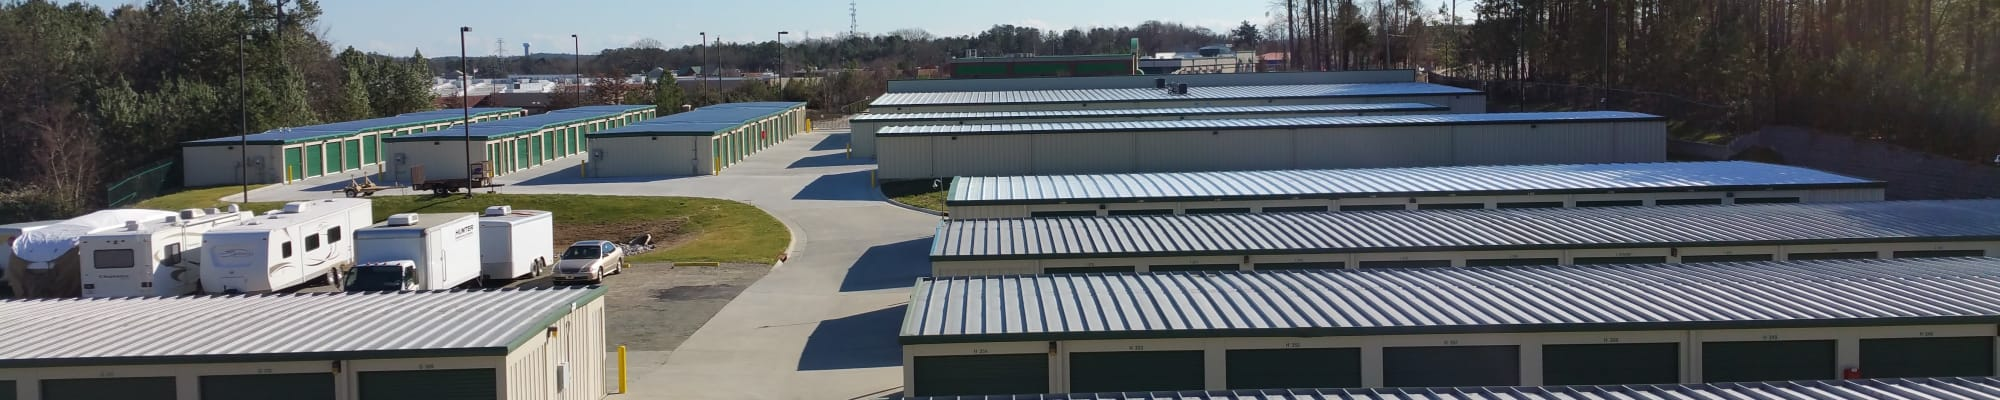 Self Storage at Cardinal Self Storage in Graham, North Carolina